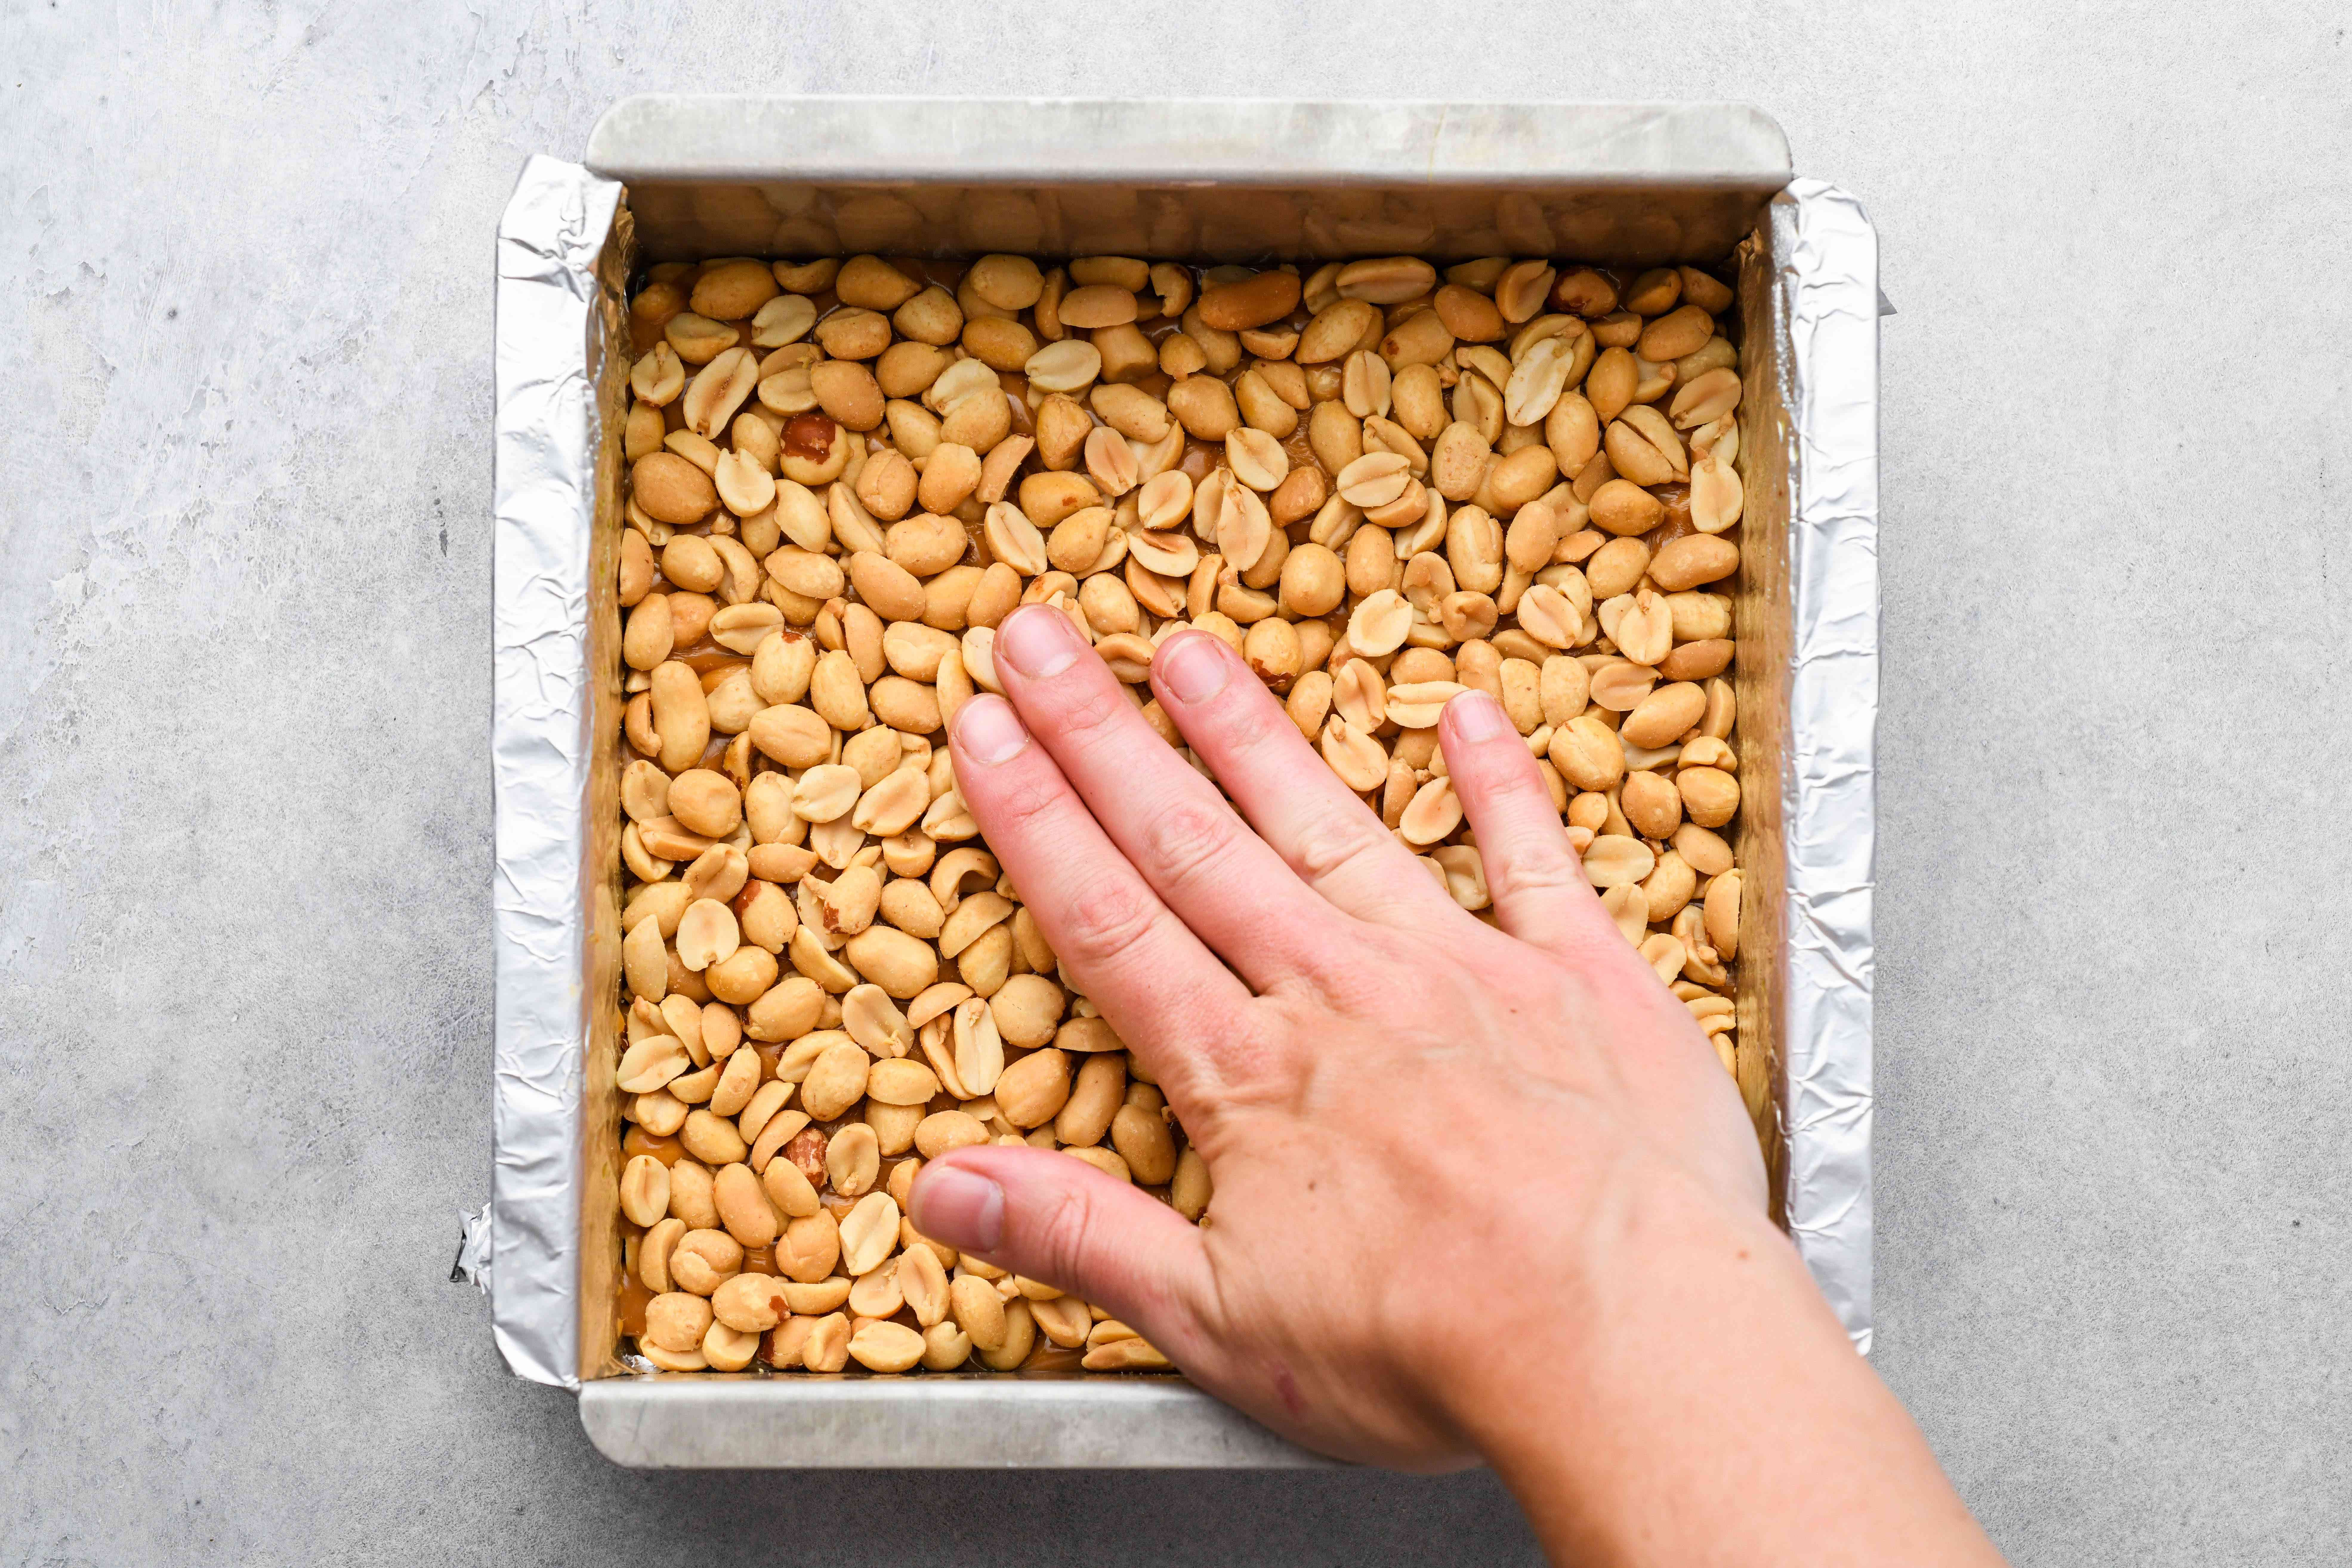 layer of peanuts on top of the caramel mixture in the pan